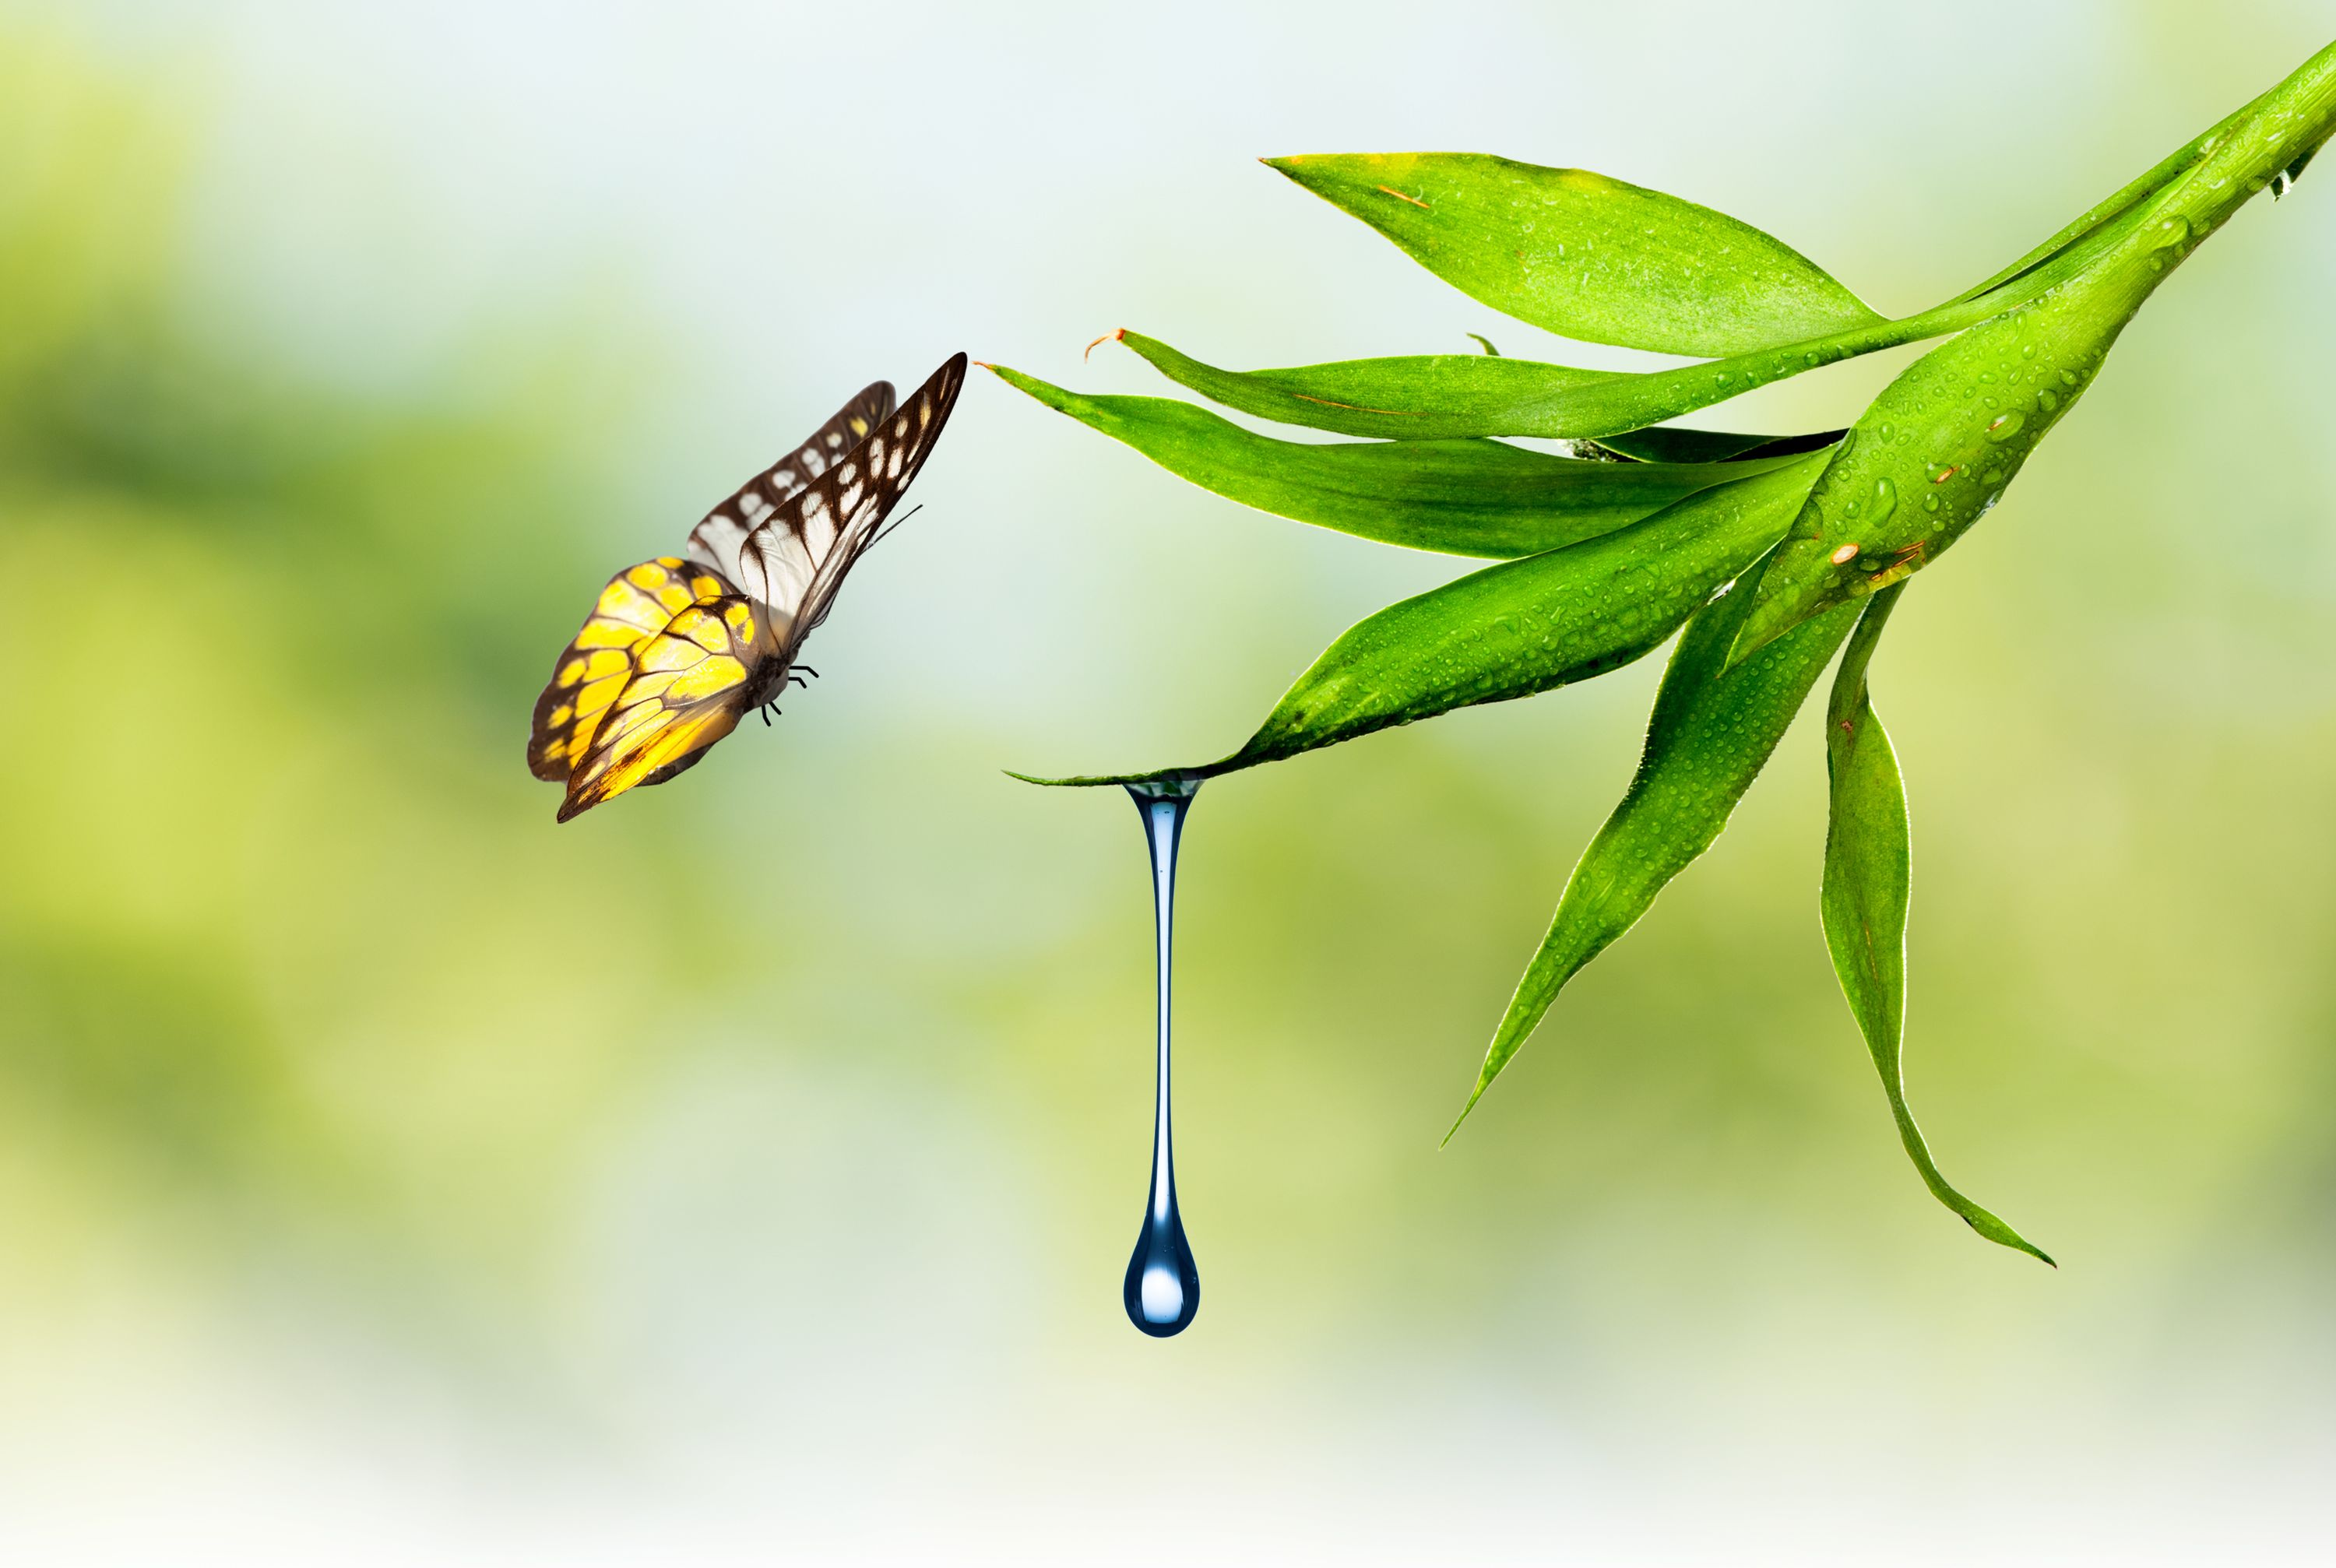 Flying-Butterfly-and-Green-Leaf-with-Waterdrop